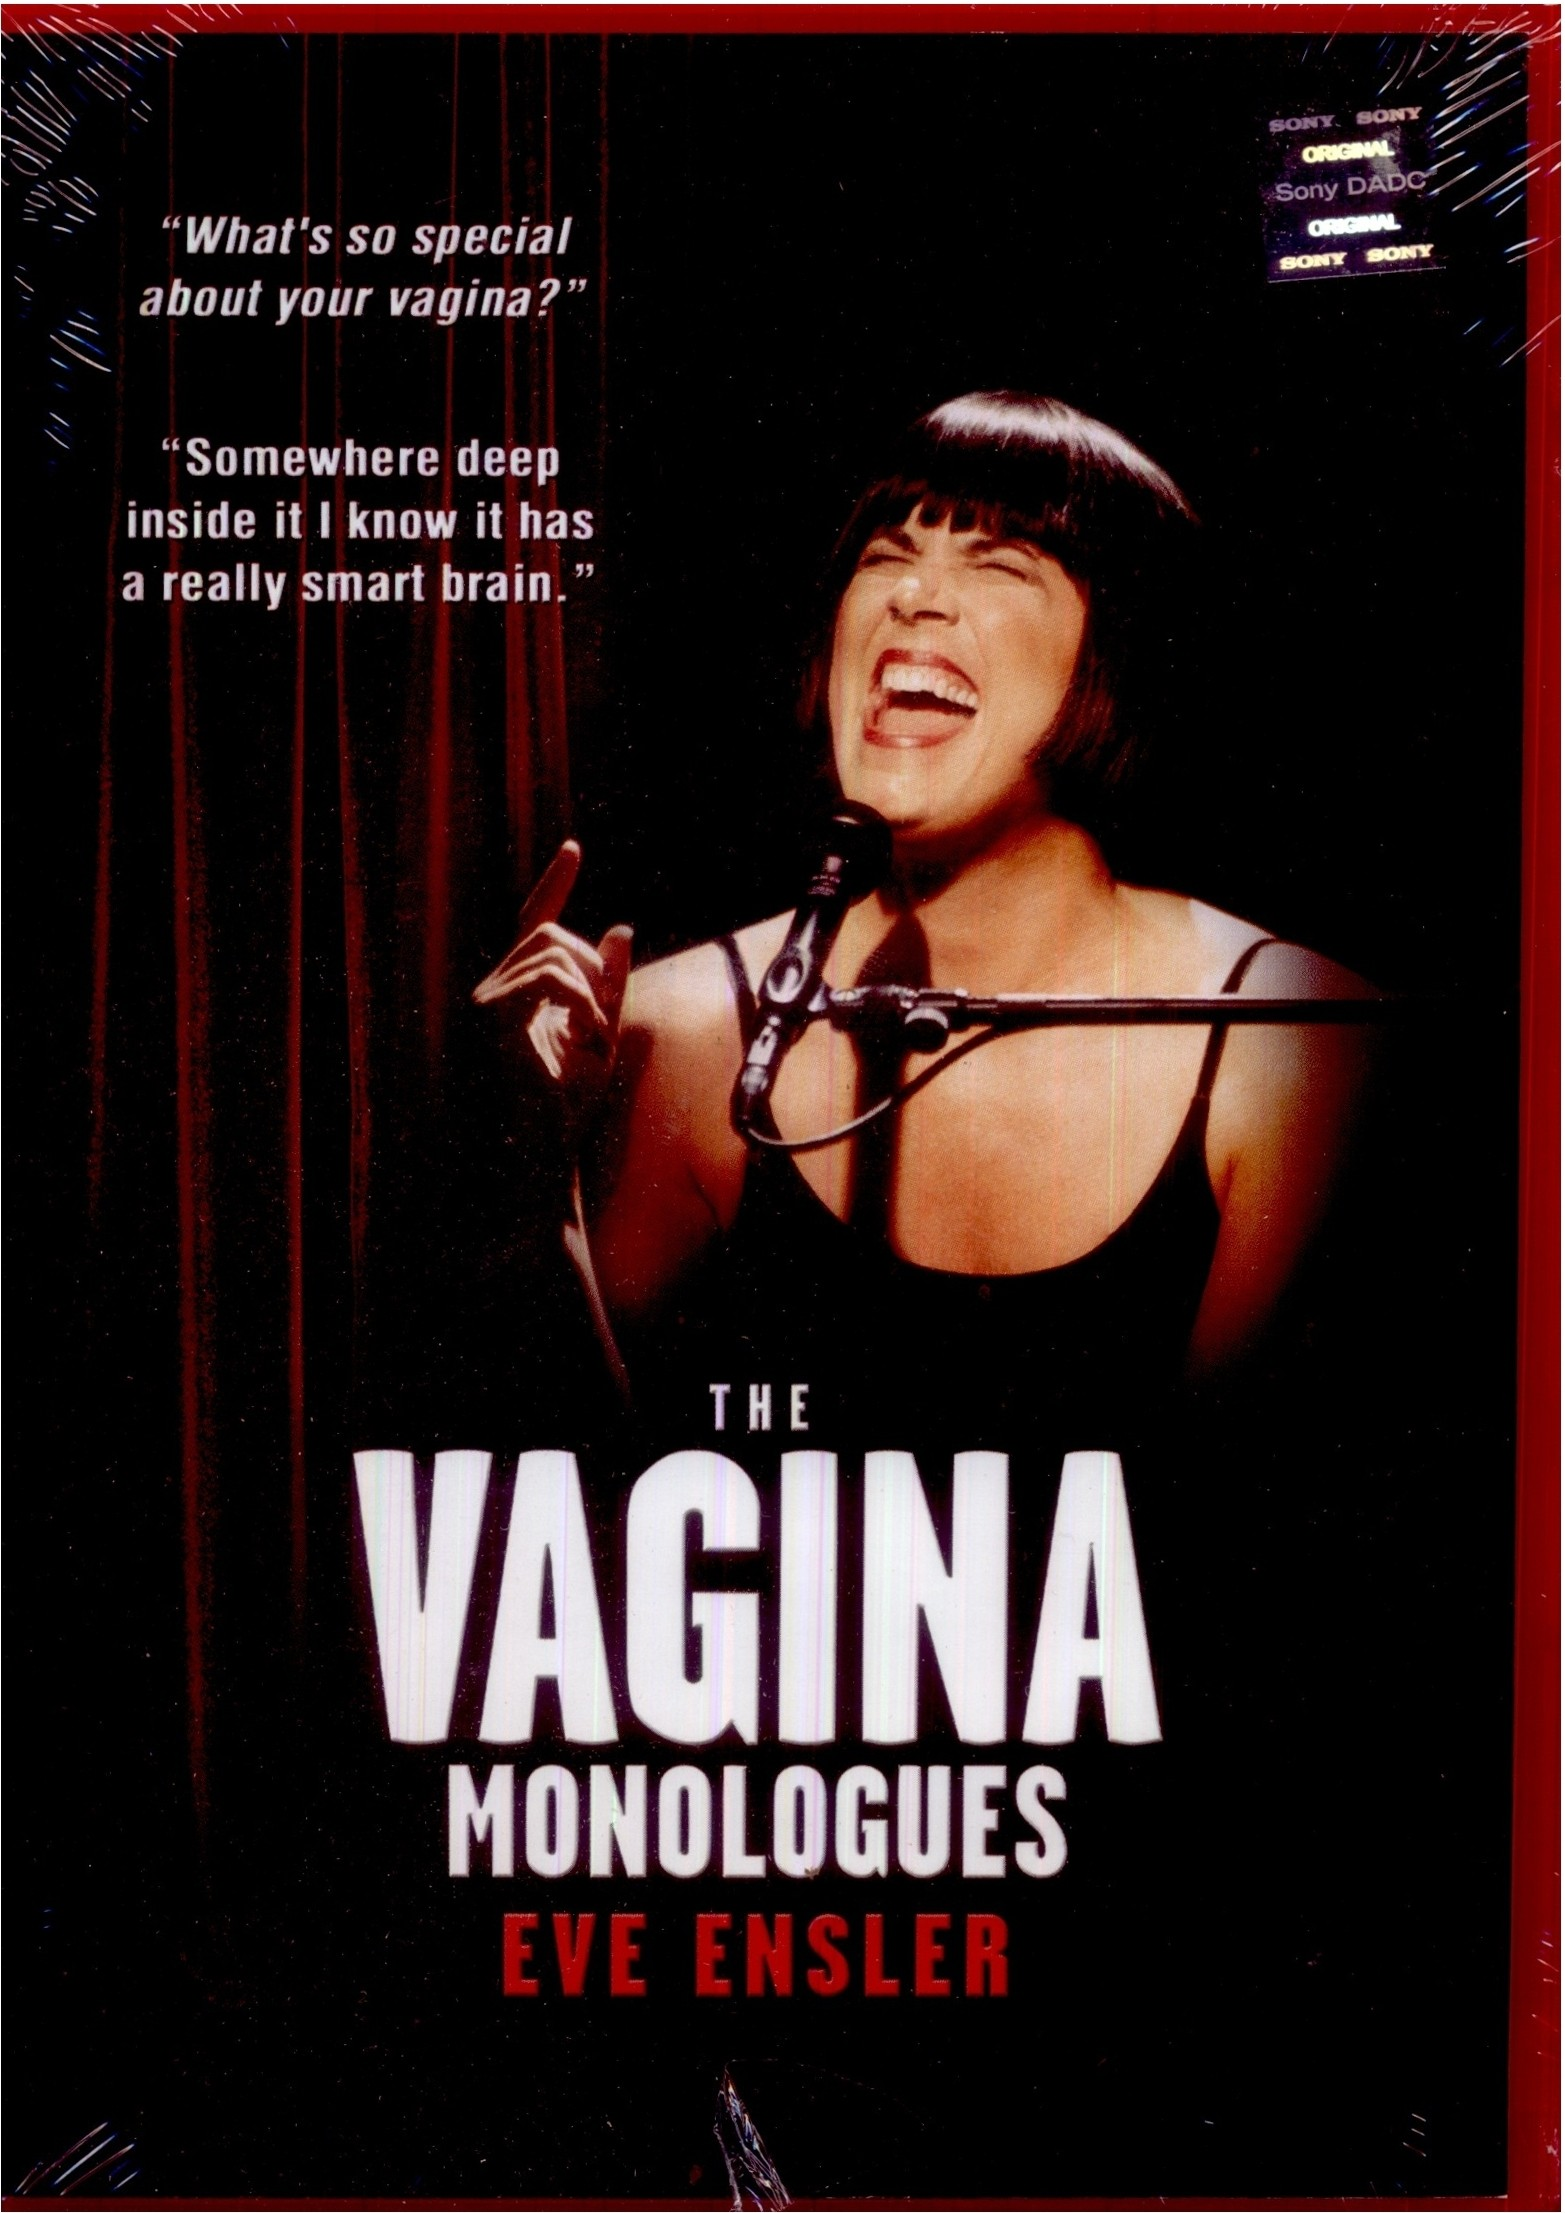 an analysis of the play vagina monologues Unlv to close the curtain on 'the vagina monologues' eve ensler's the vagina monologues—an episodic play that uses the vagina as a symbol of analysis.